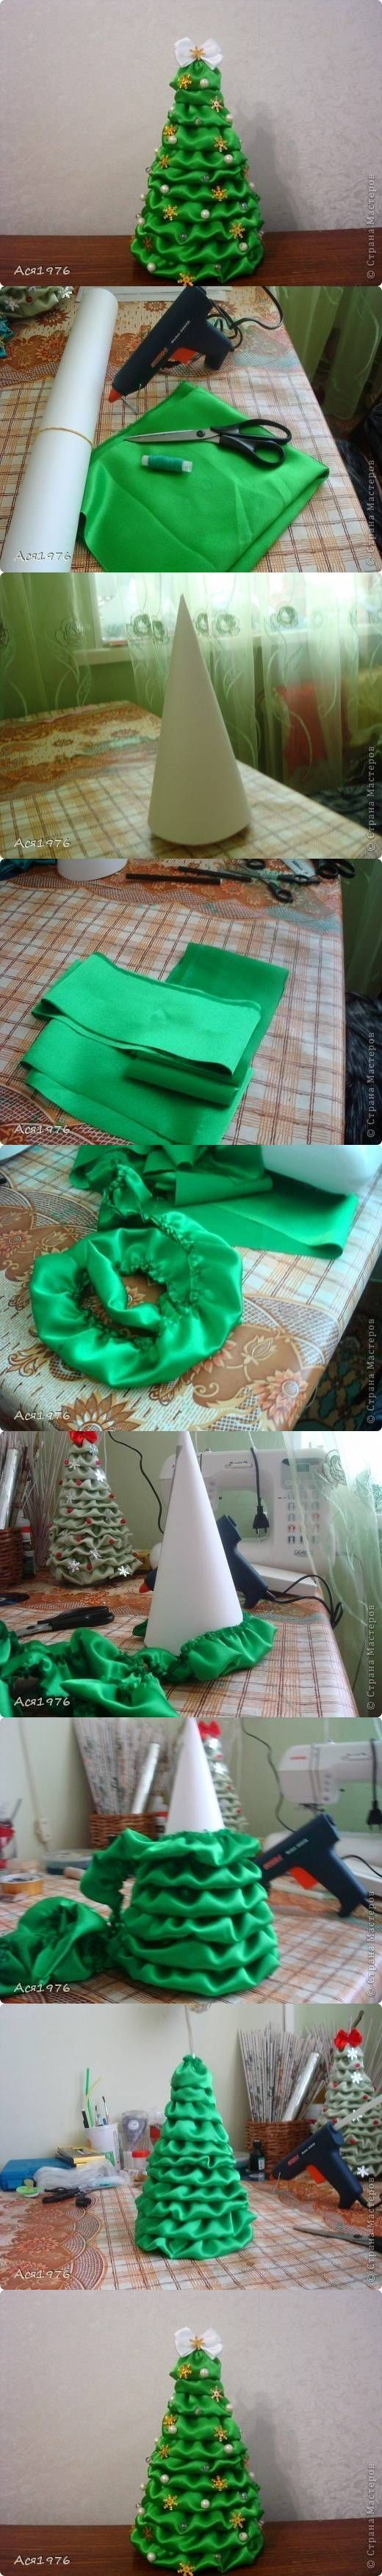 DIY Fabric Christmas Tree DIY Projects | UsefulDIY.com Follow Us on Facebook ==> http://www.facebook.com/UsefulDiy